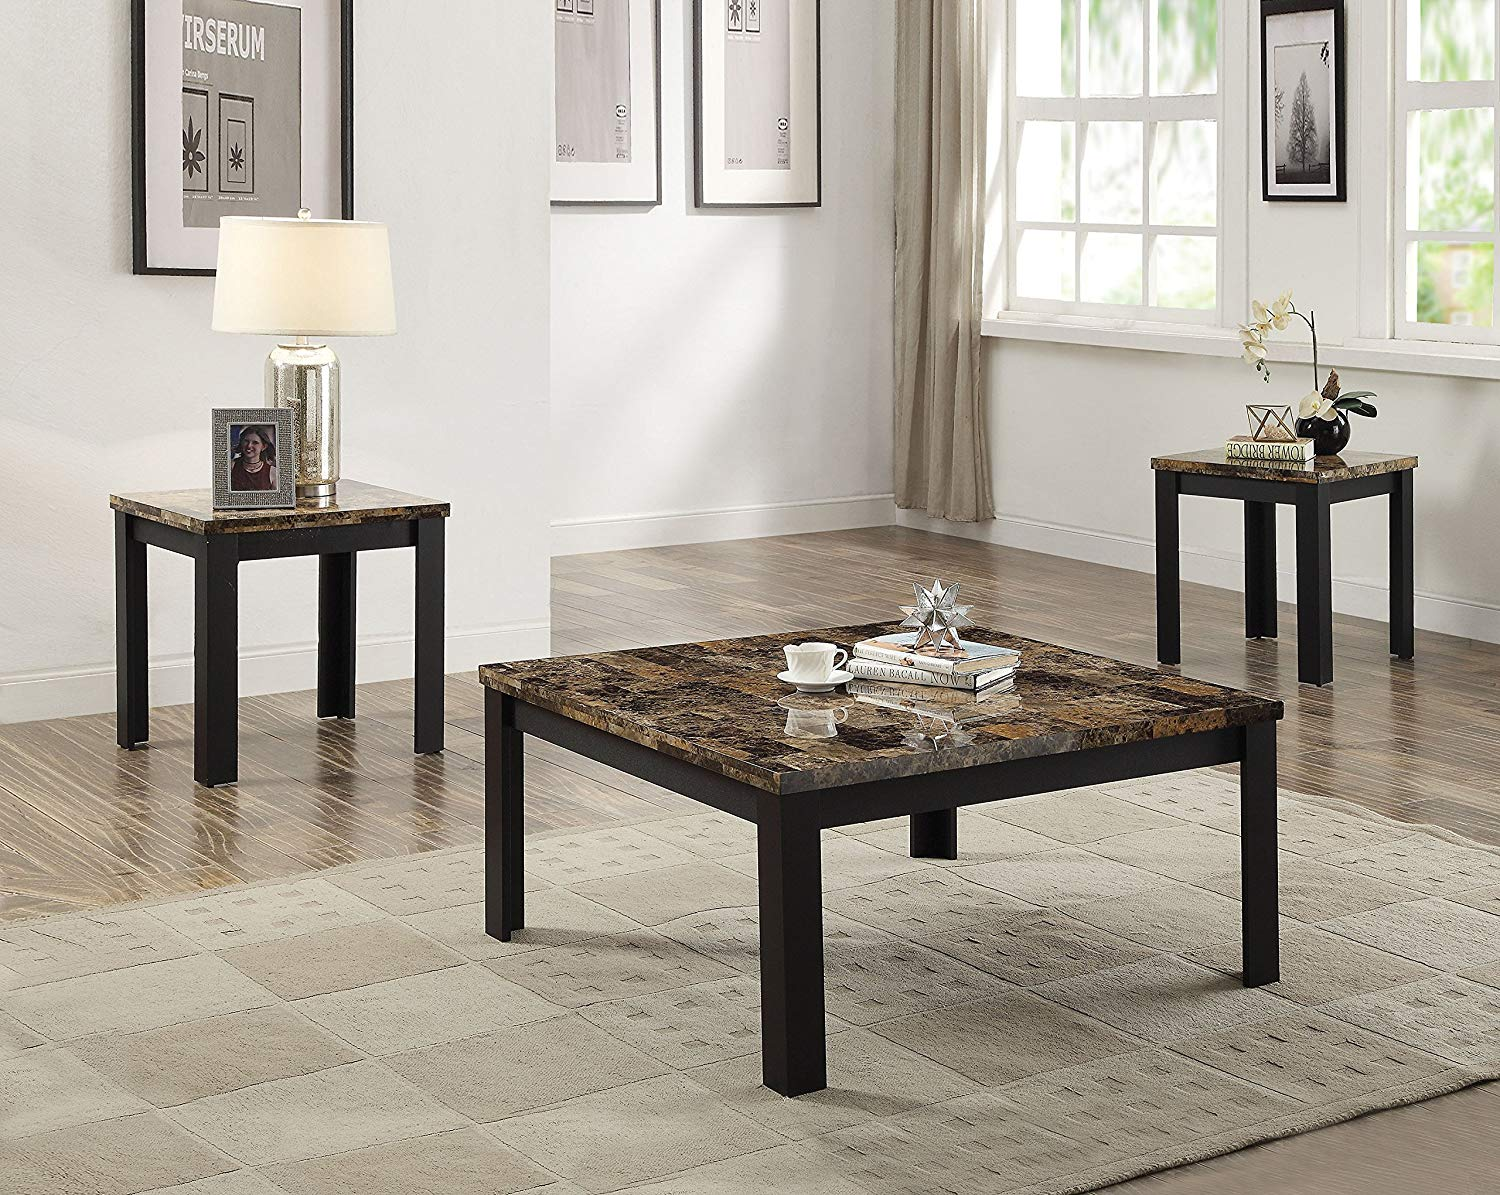 acme furniture finely piece coffee and end table set ijel dark brown tables black kitchen dining scalloped wall shelf mirror bedroom toronto ethan allen signature firm mattress